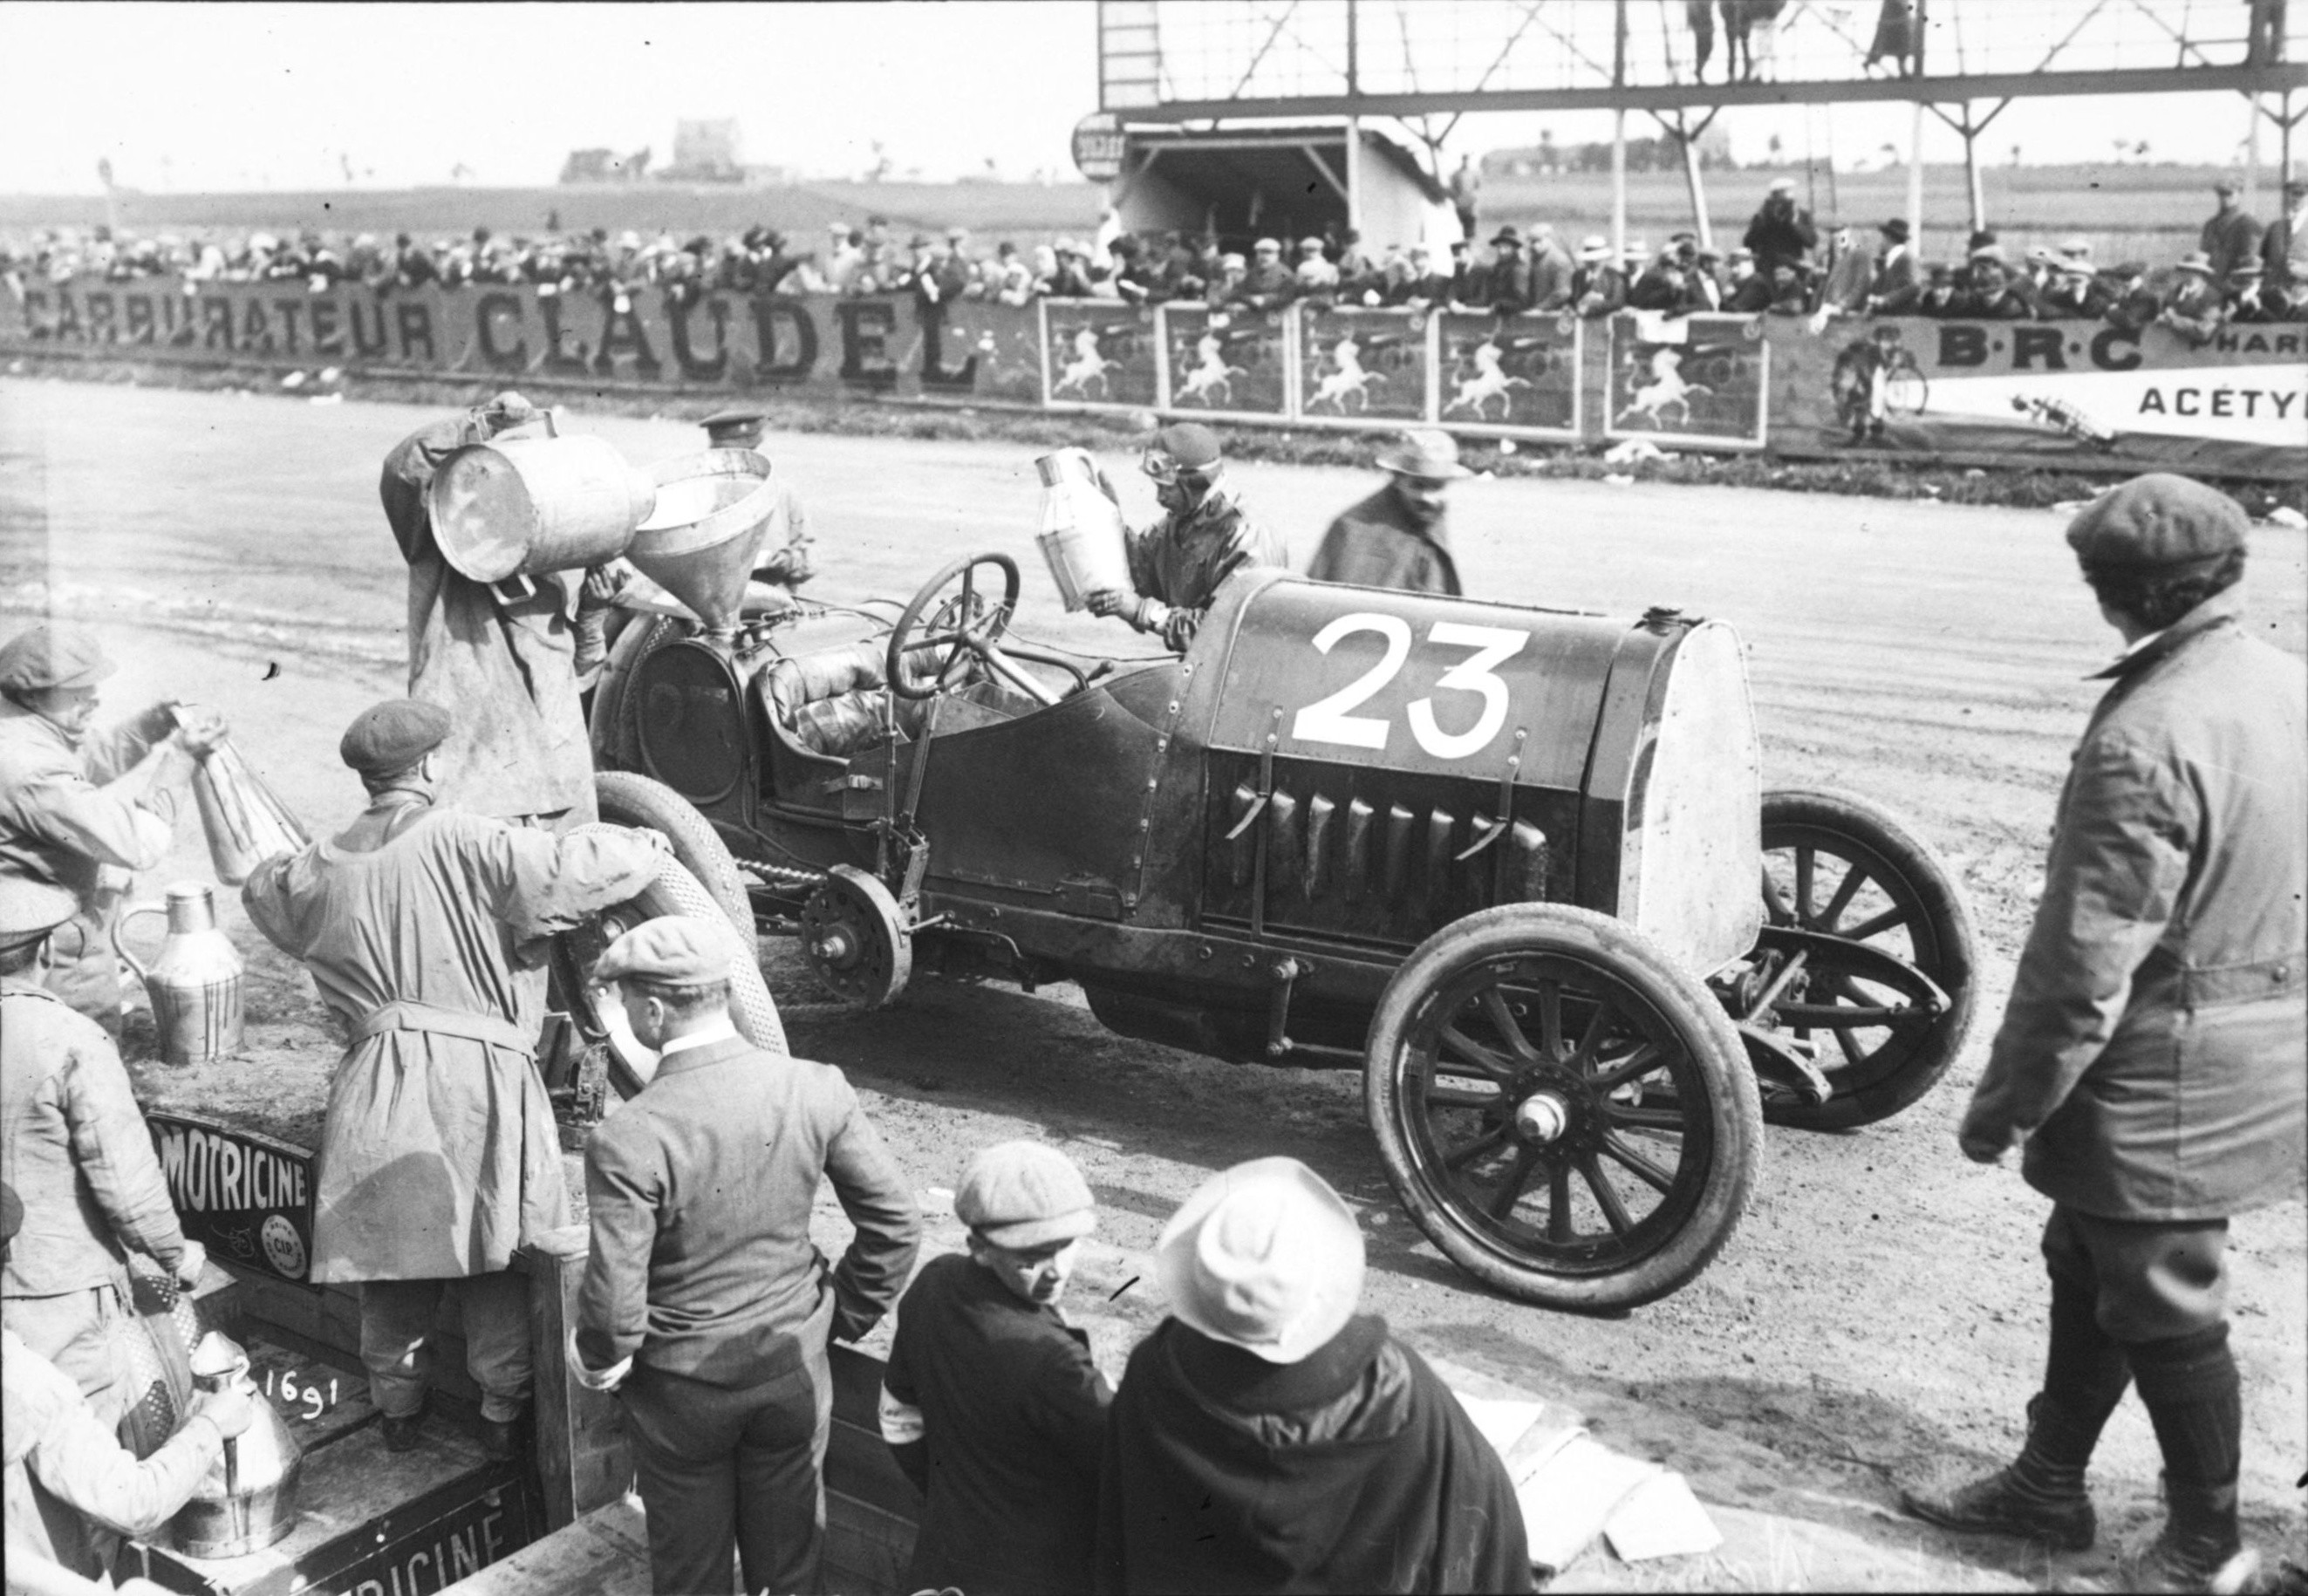 Louis_Wagner_in_his_Fiat_at_the_1912_French_Grand_Prix_at_Dieppe_(10)